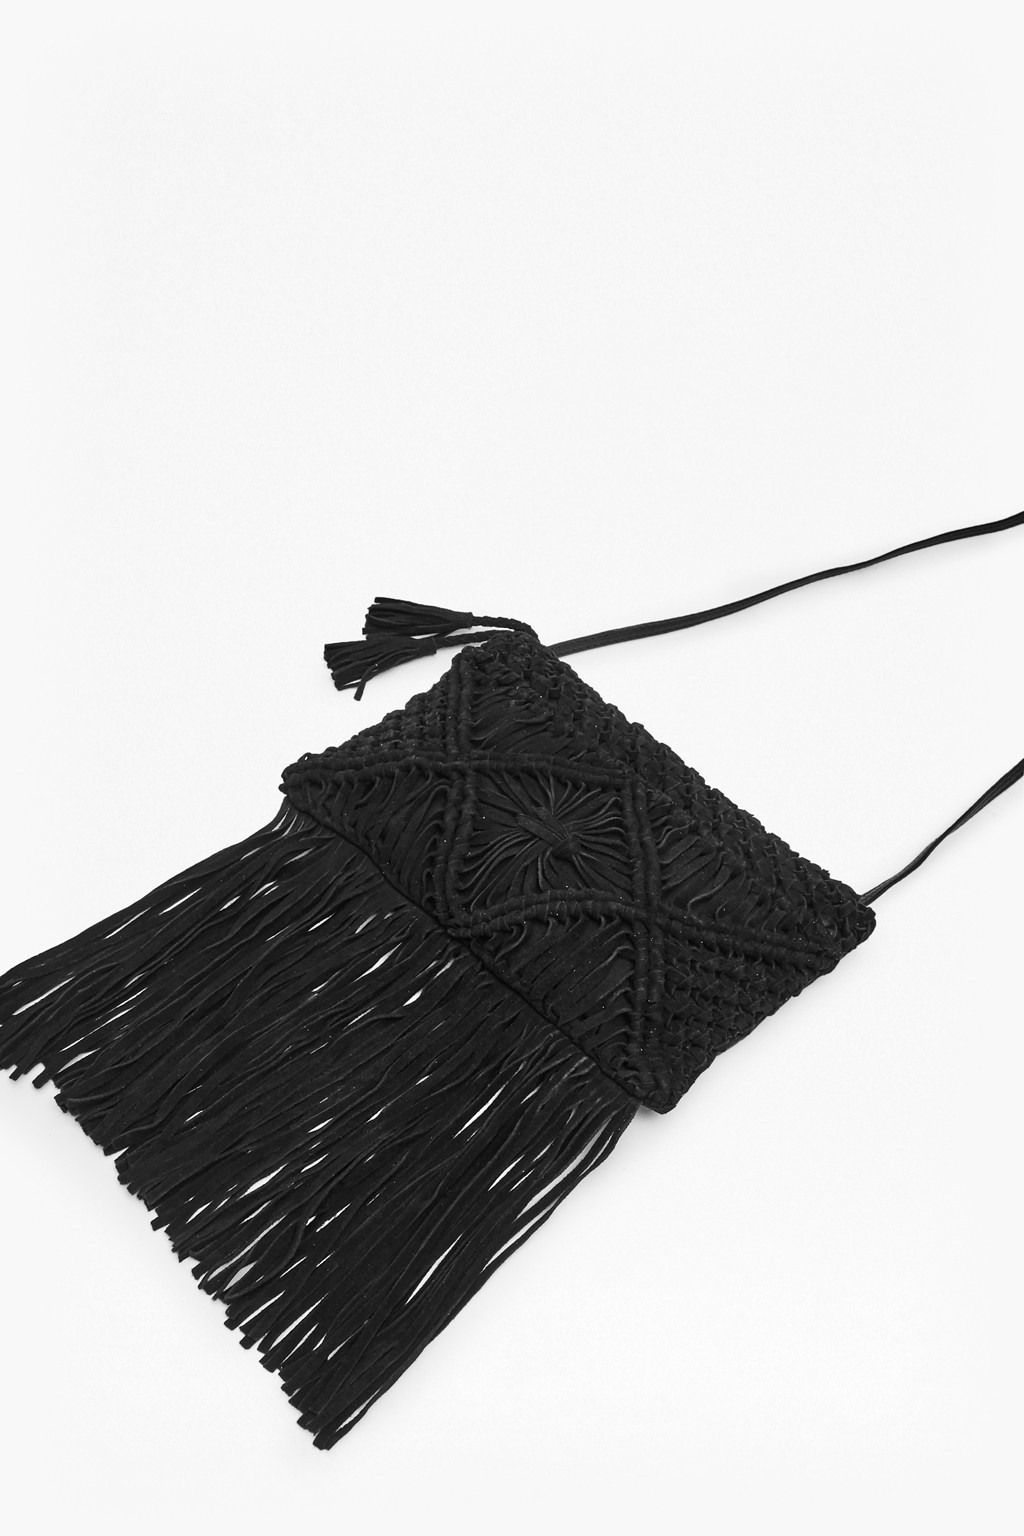 Macrame Suede Fringe Bag Black - predominant colour: black; occasions: casual, creative work; type of pattern: standard; style: shoulder; length: across body/long; size: standard; material: suede; embellishment: fringing; pattern: plain; finish: plain; season: s/s 2016; wardrobe: investment